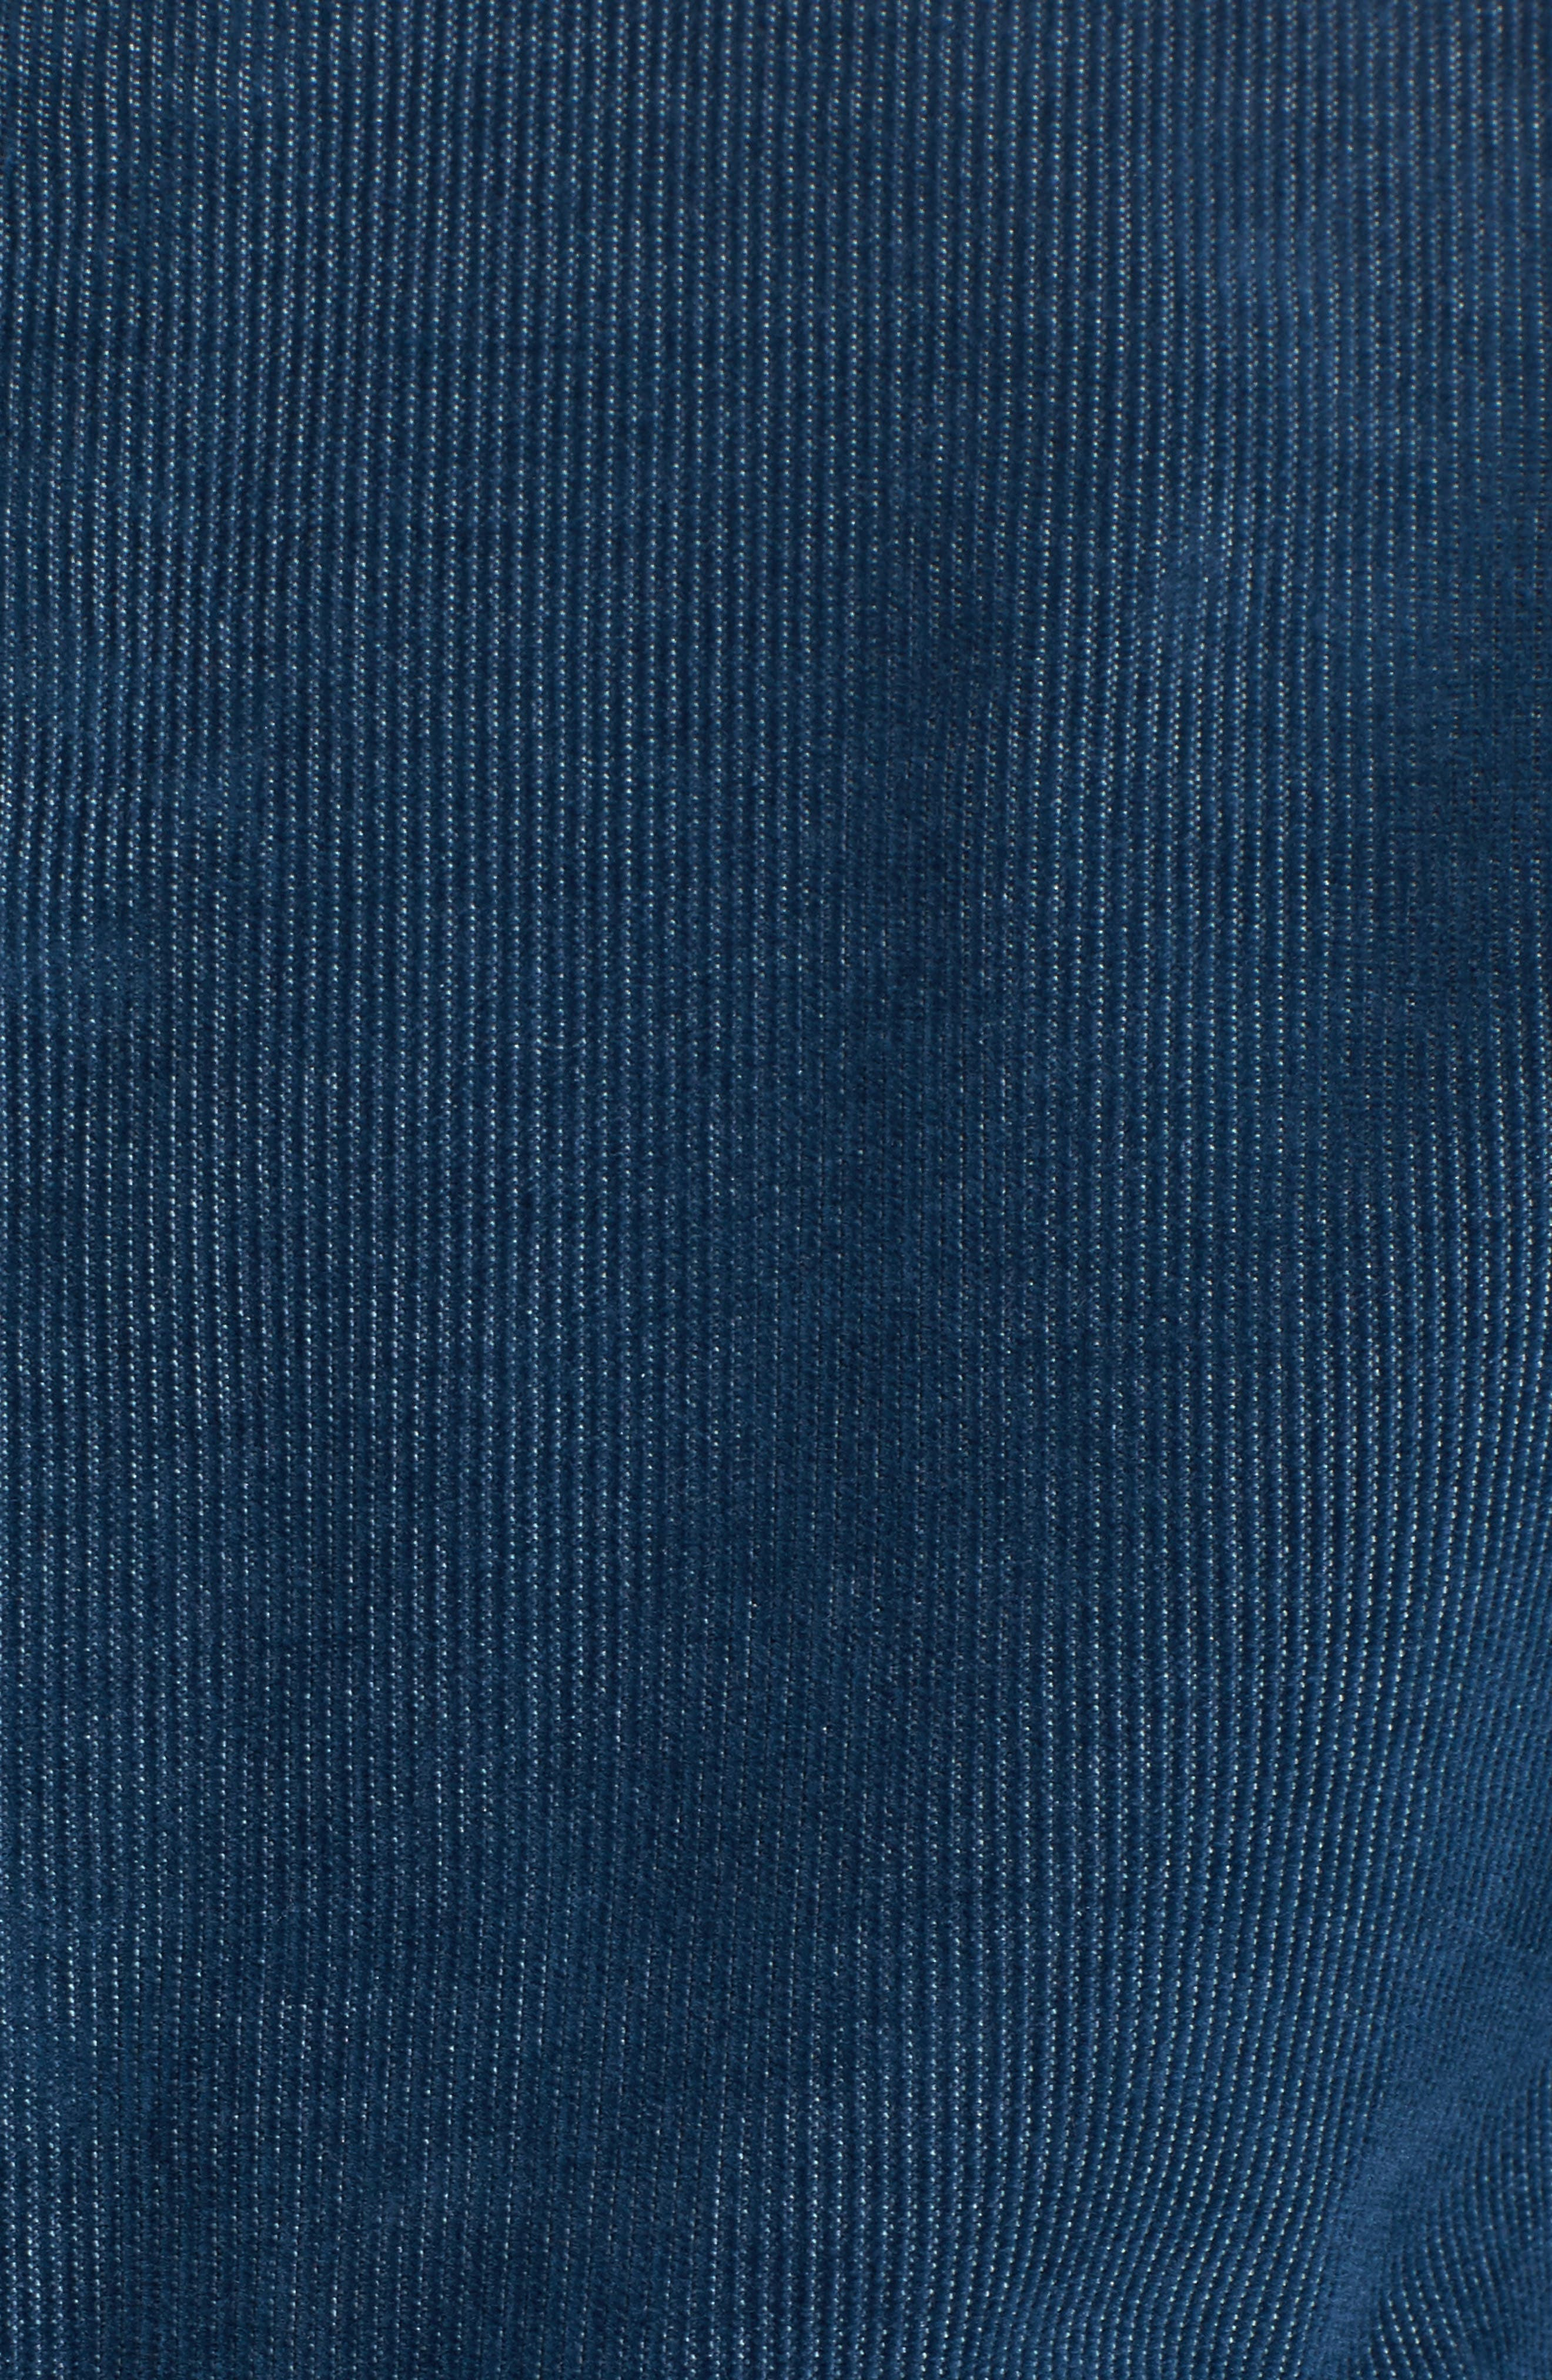 Cheriton Corduroy Shirt,                             Alternate thumbnail 5, color,                             400